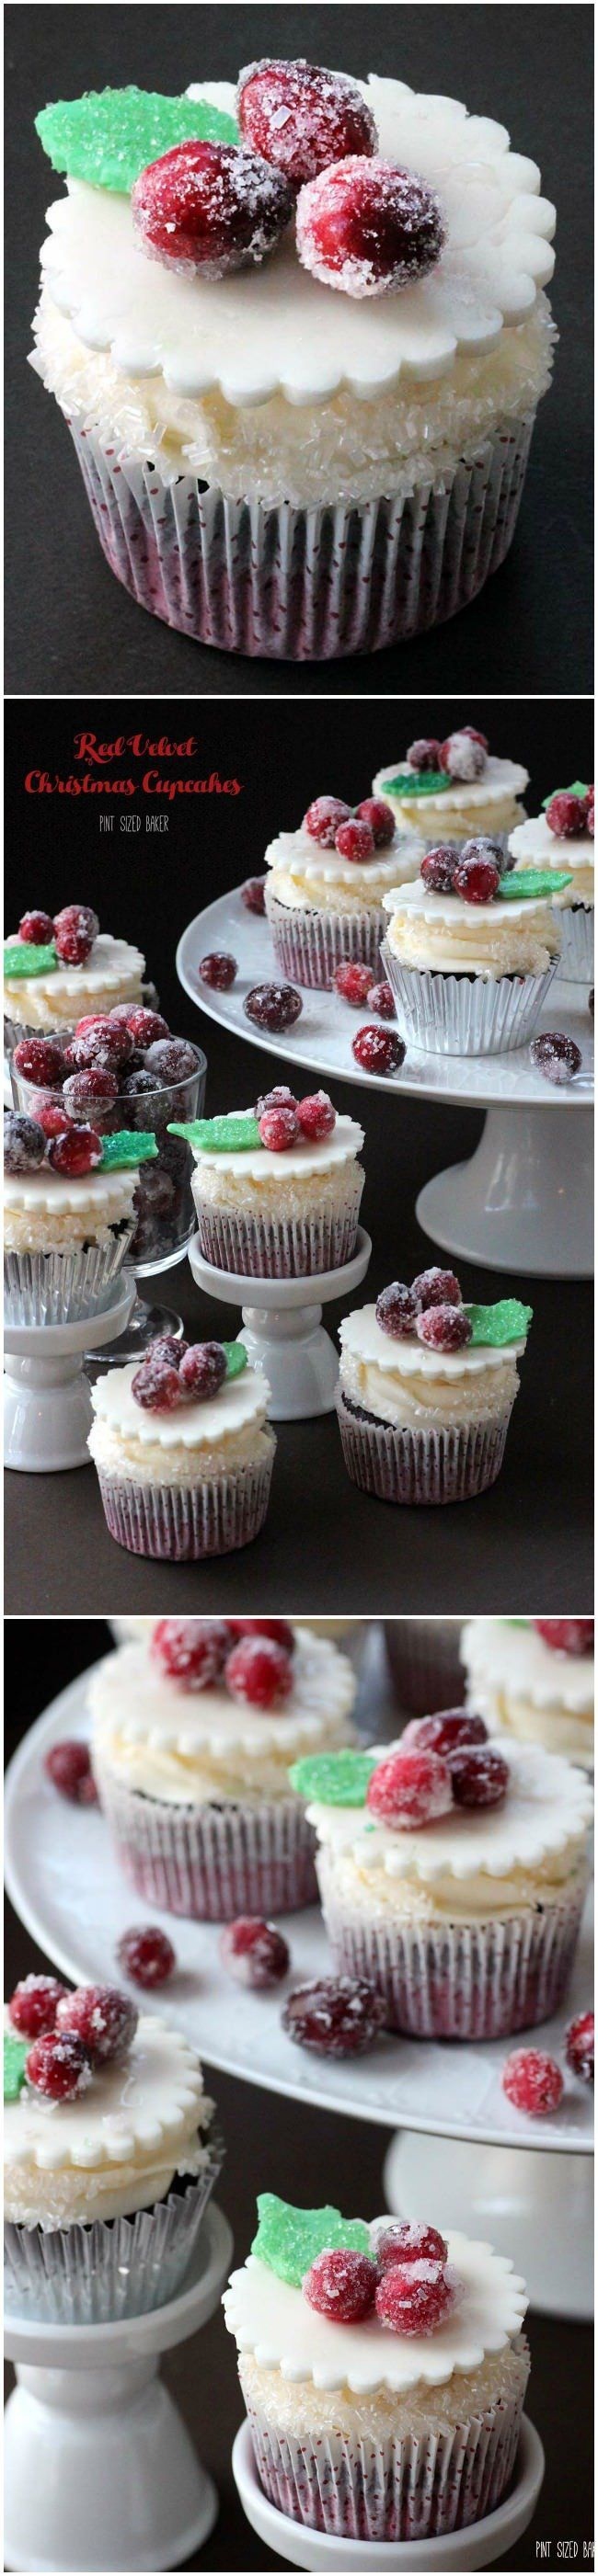 My family loved these Red Velvet Christmas Cupcakes with marshmallow fondant and sugared cranberries.